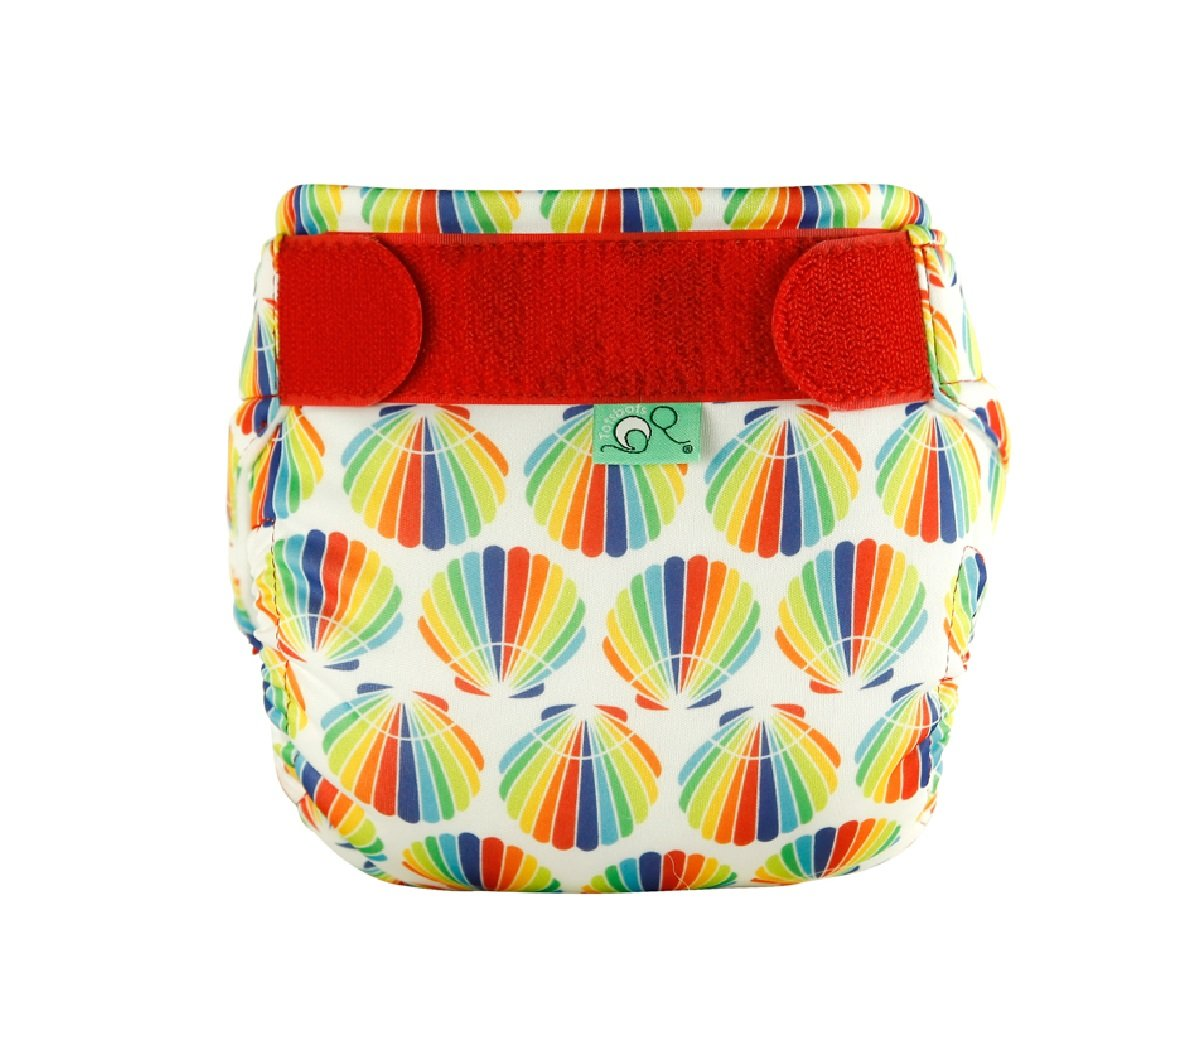 TotsBots Swims - Urchin Design Reusable Washable Swimming Nappy in size 1, 10-20 lbs Tots Bots Limited 5060510761681